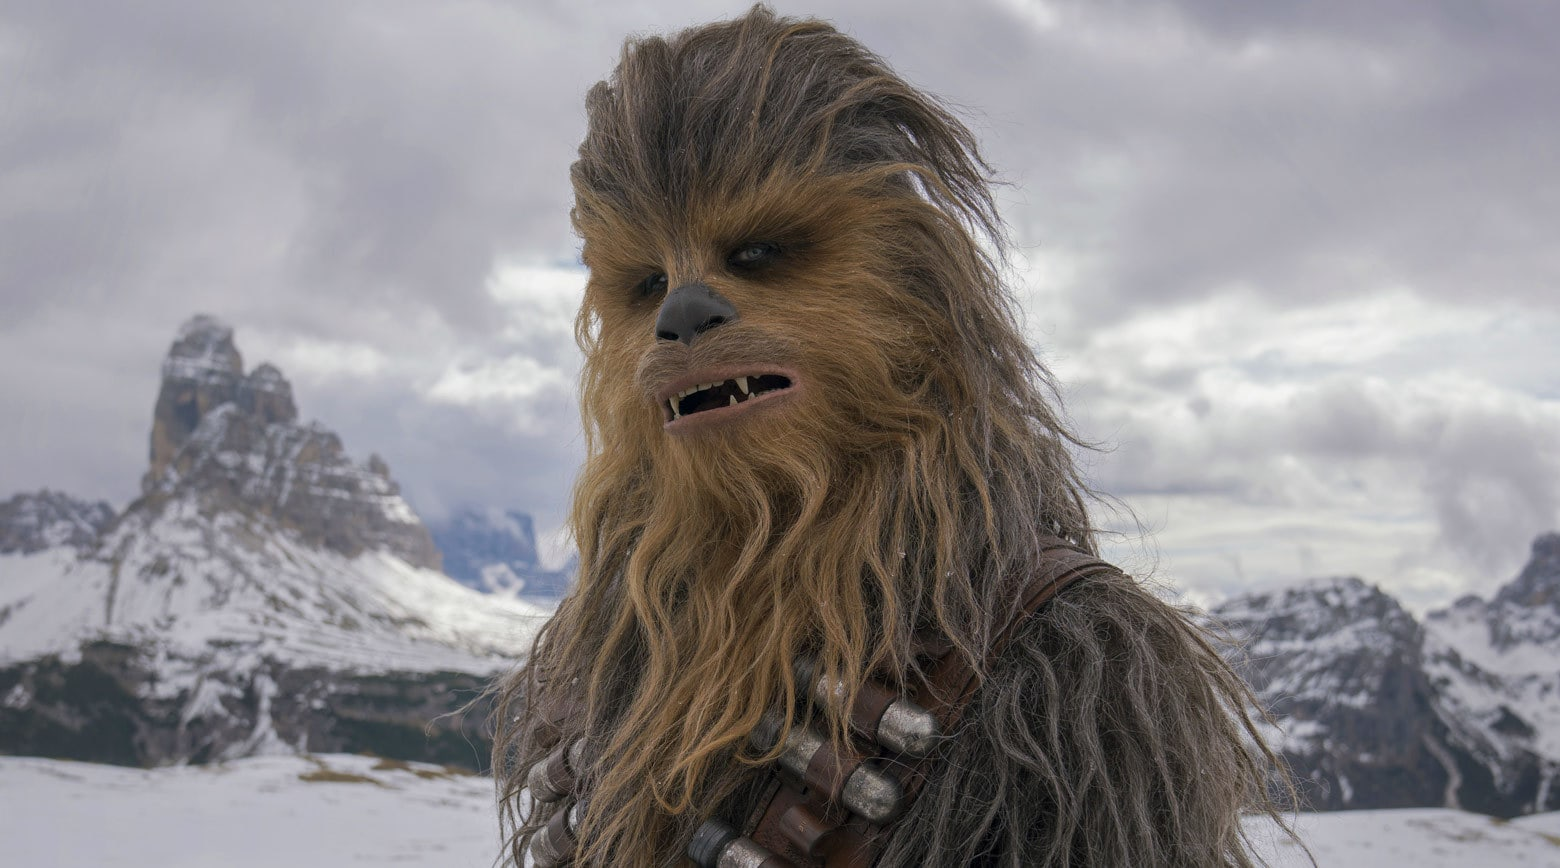 solo-chewbacca-main_80768fa8.jpeg